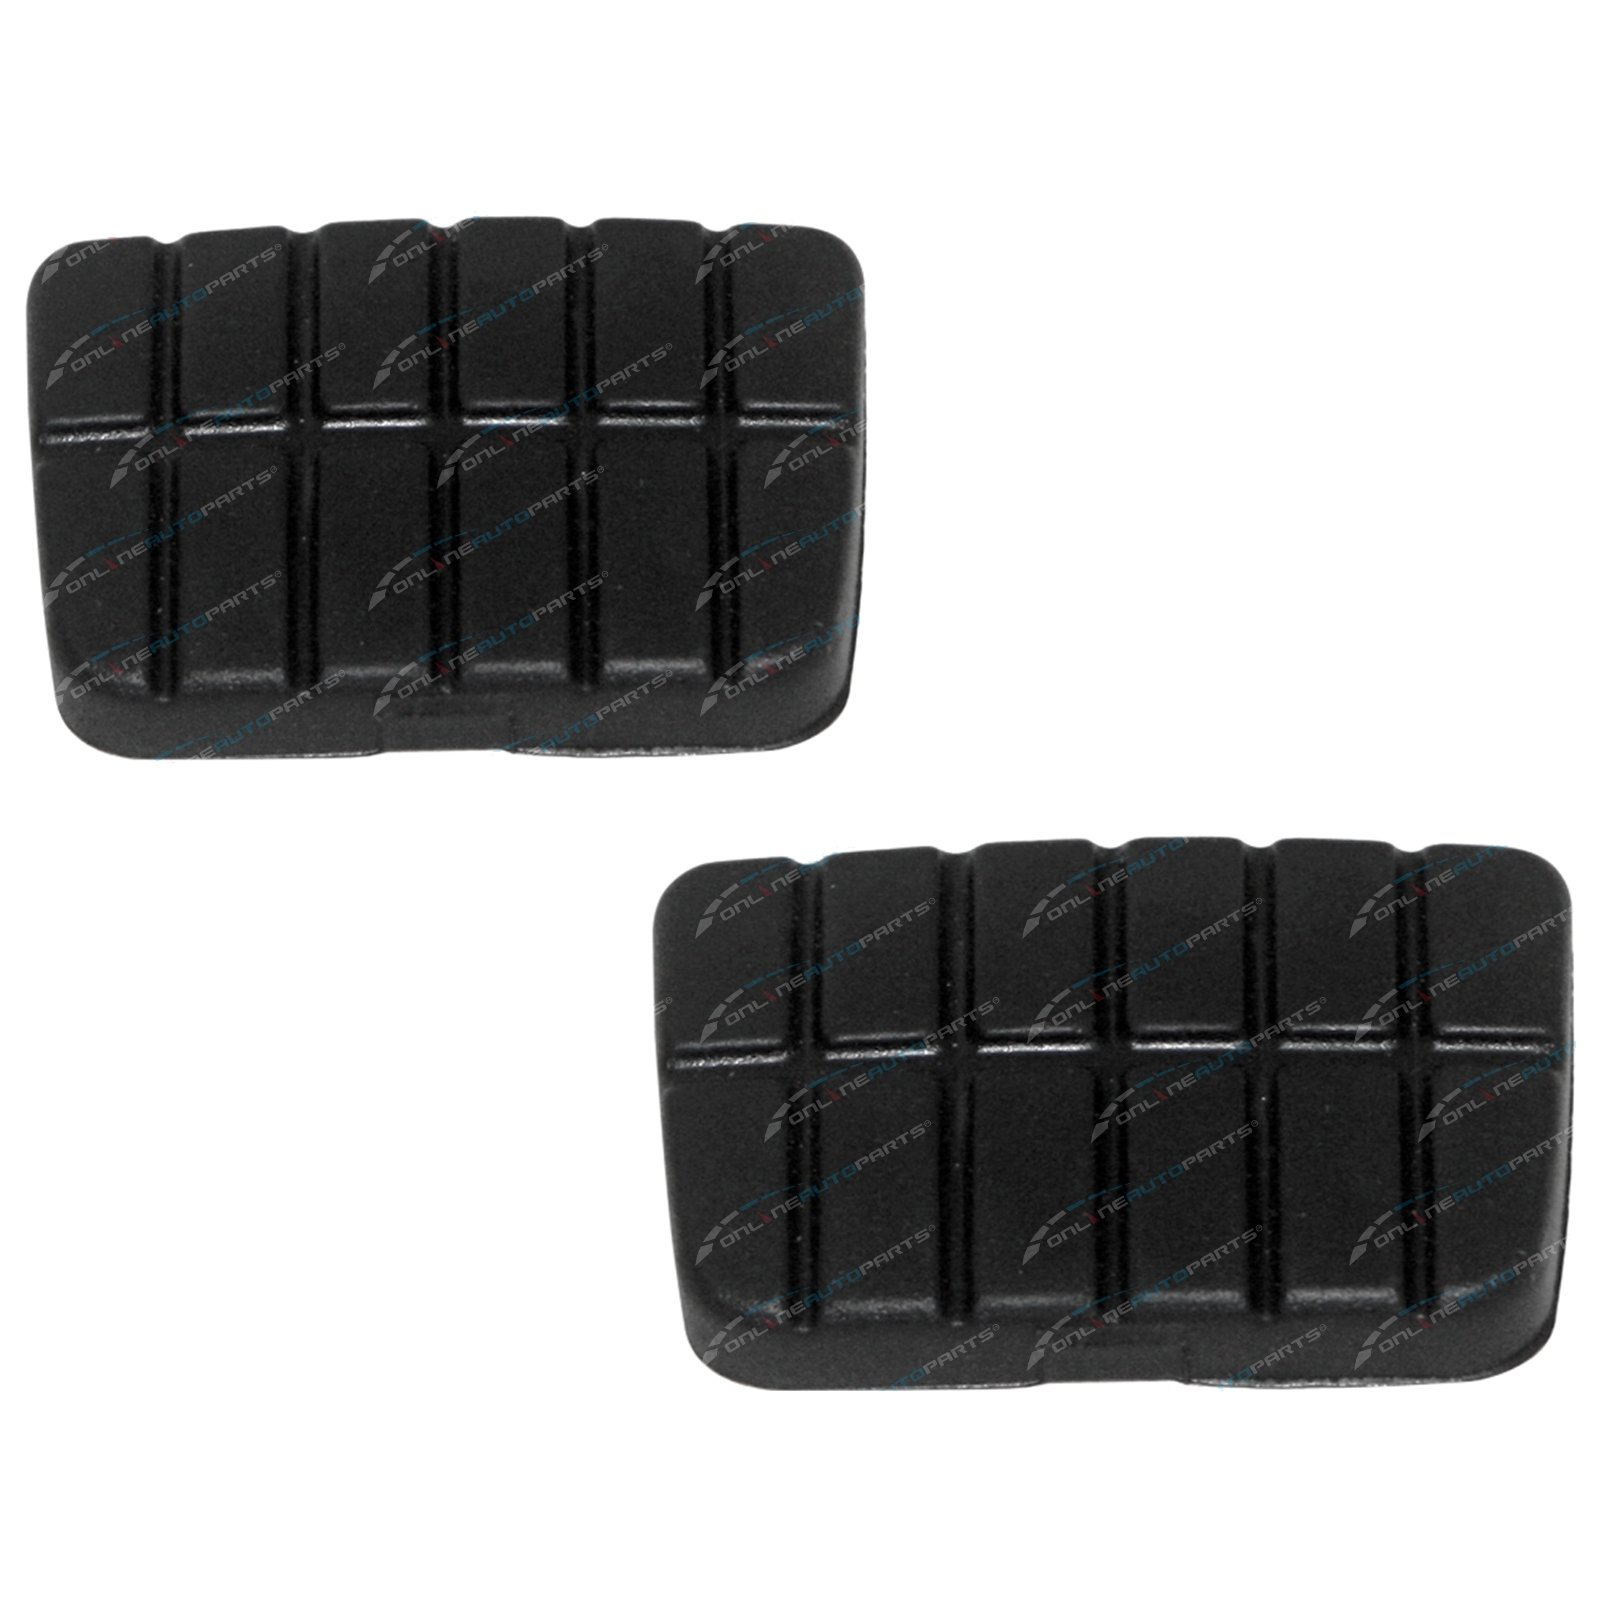 Clutch and Brake Pedal Rubber Pad Navara D21 D22 1986-2013 Manual Pair suits Nissan Pickup